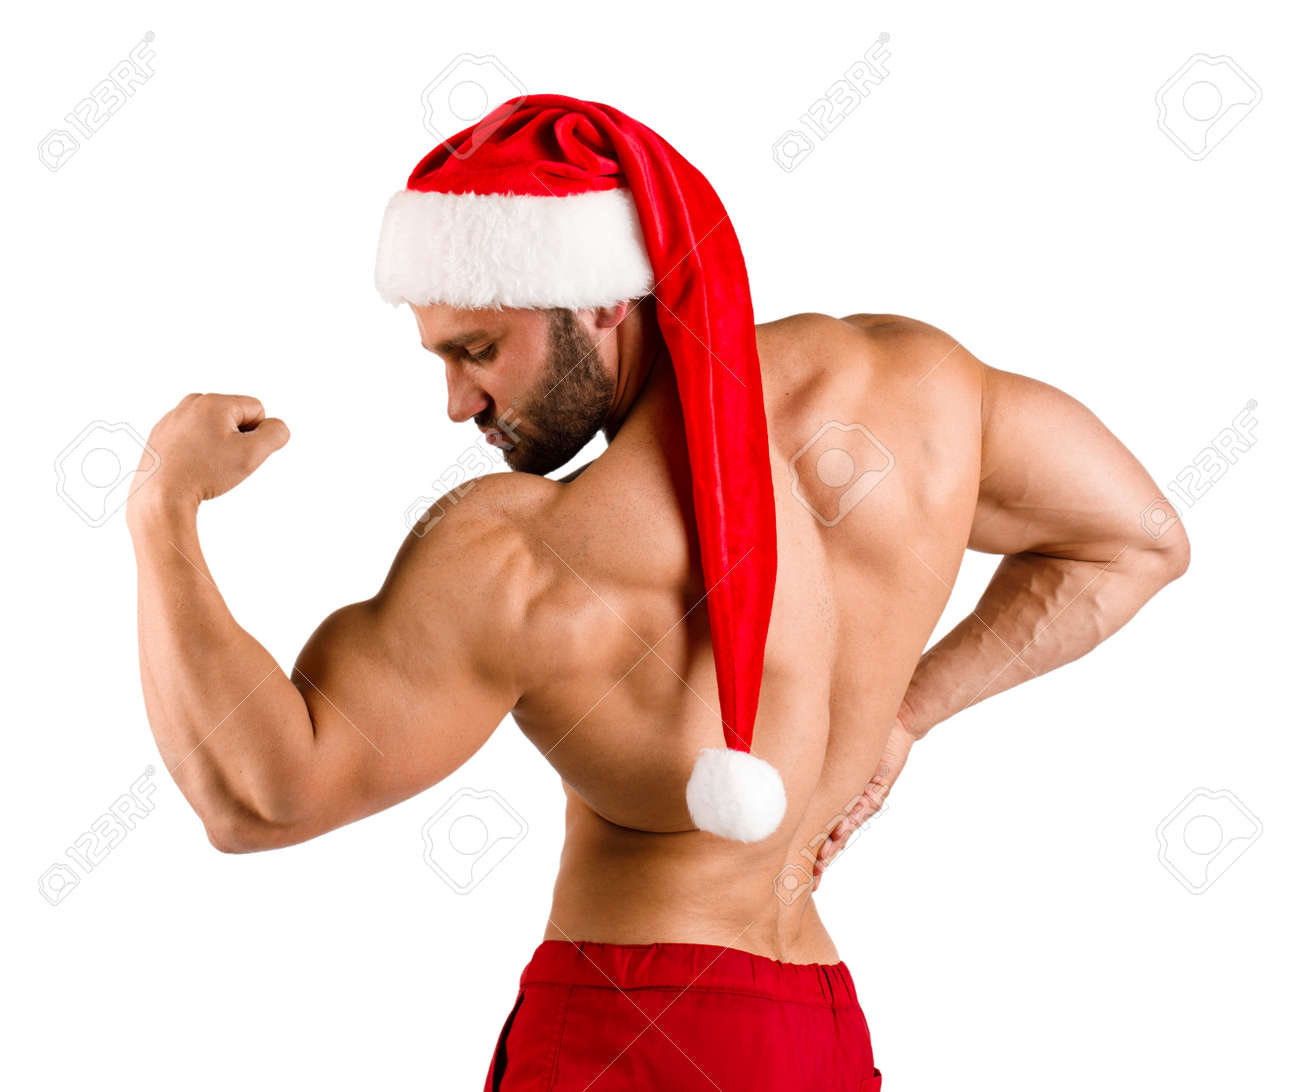 Bearded man in Santa costume flexing muscles isolated on a white background. Winter sports concept  sc 1 st  123RF.com & Bearded Man In Santa Costume Flexing Muscles Isolated On A White ...